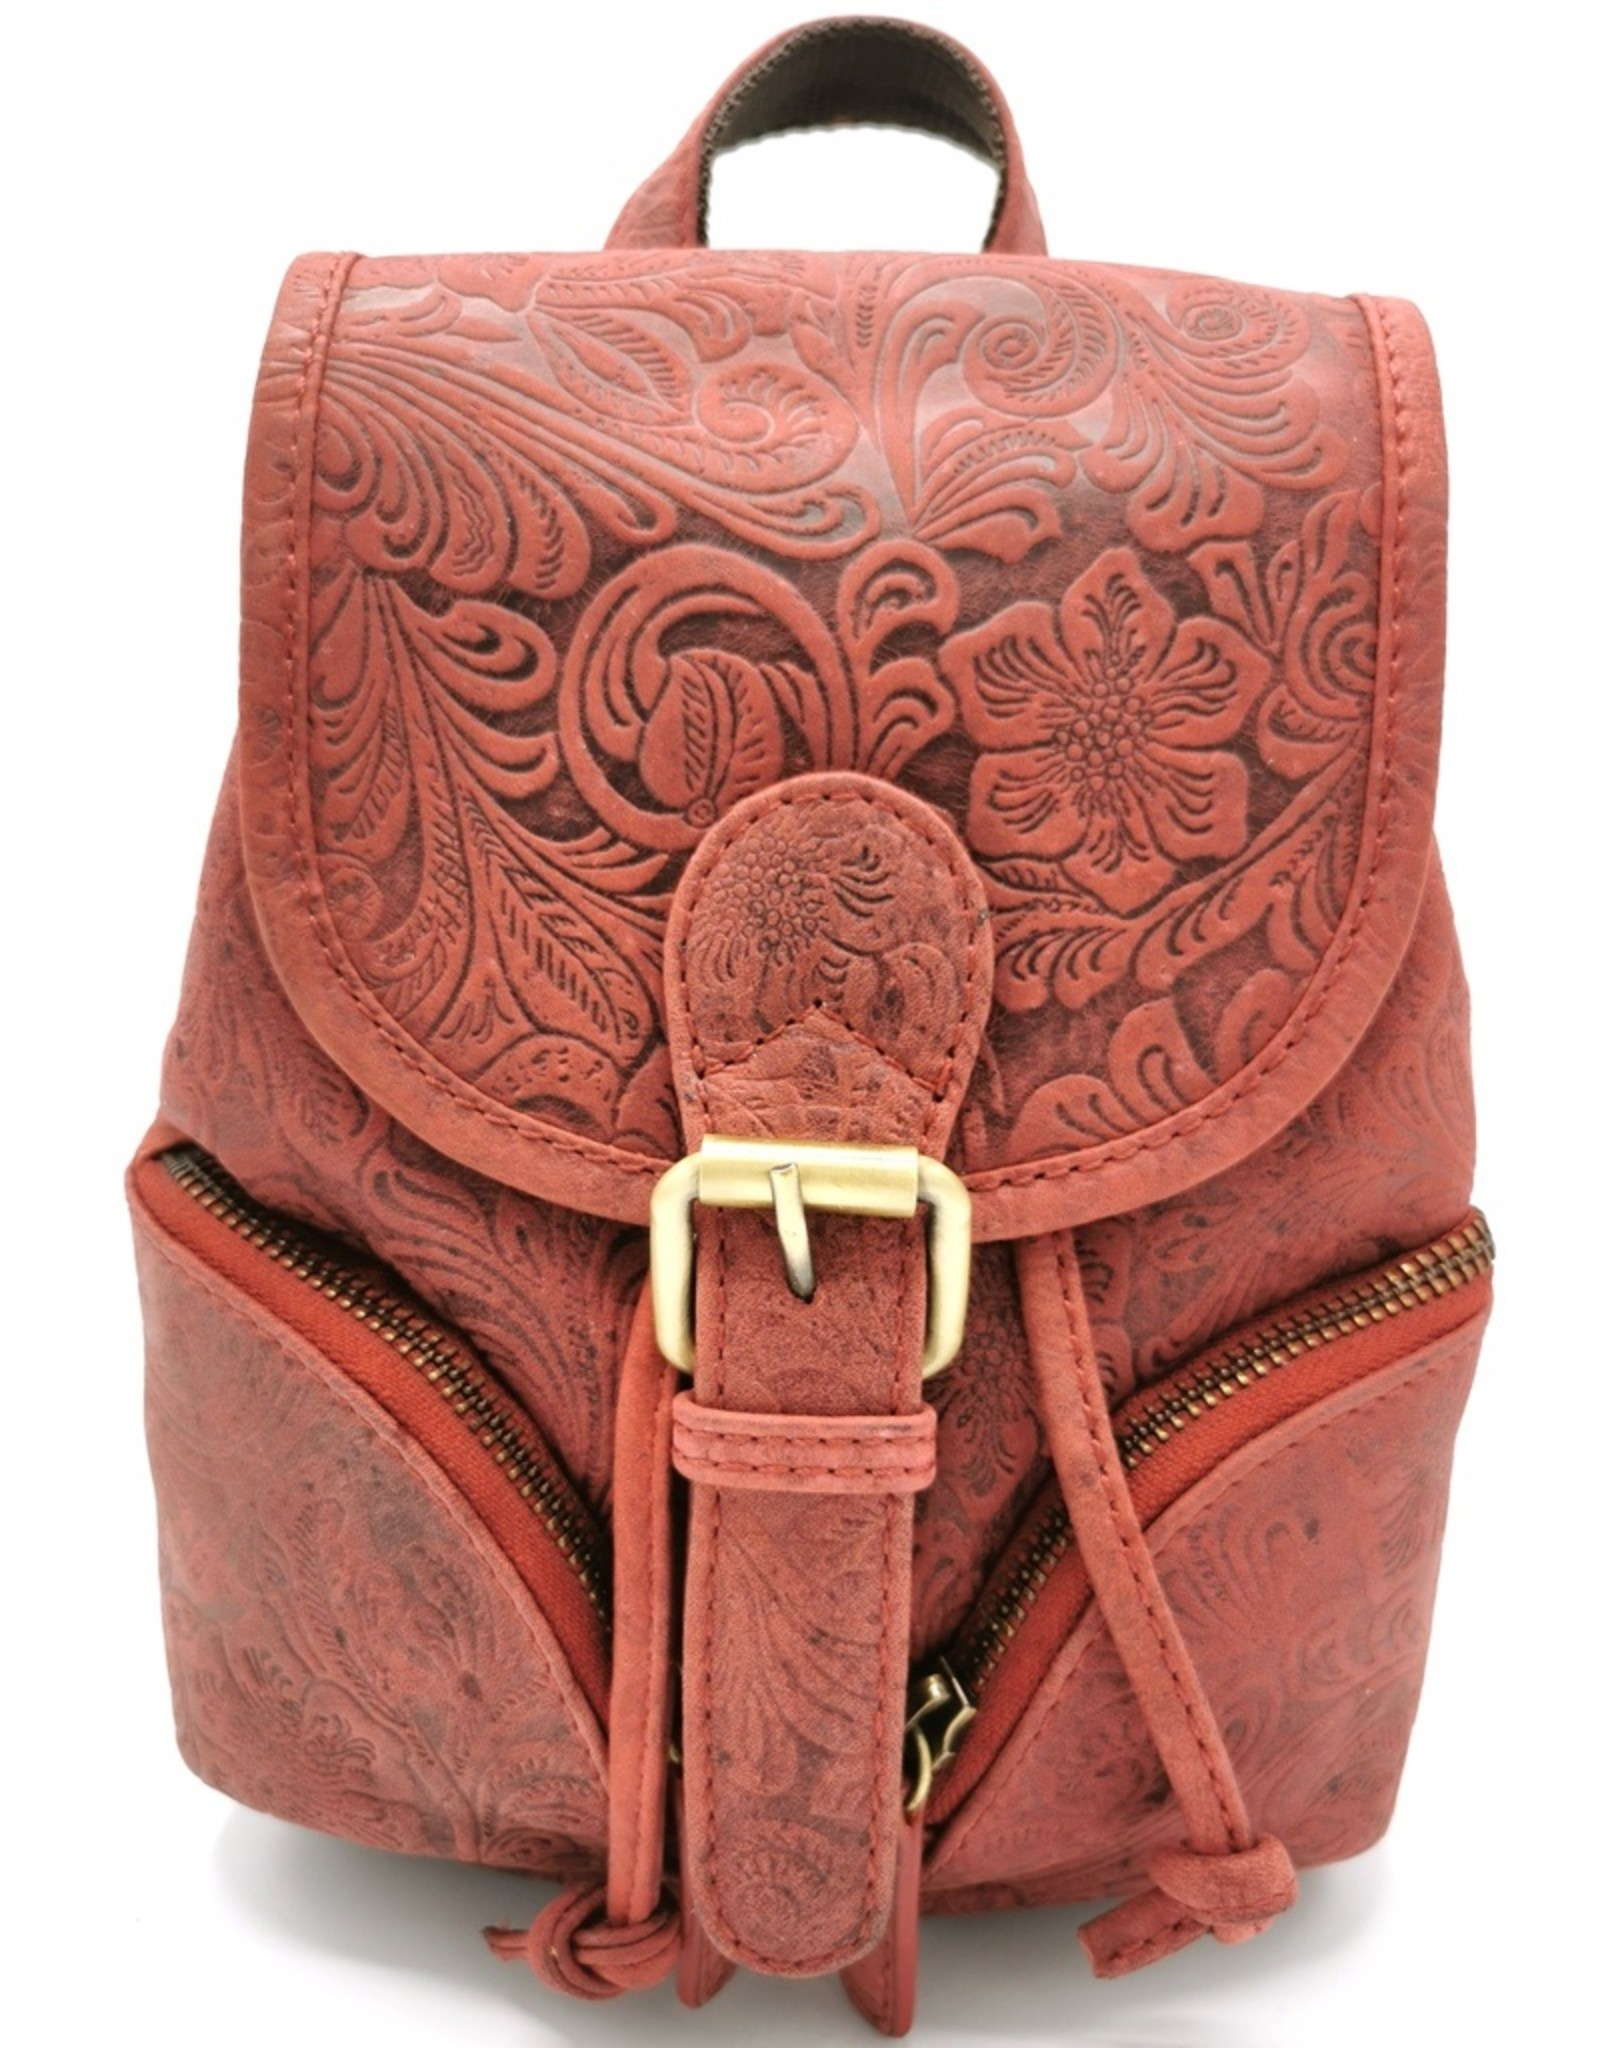 Hunters Leather backpacks  and leather shoppers - Leather Backpack with Relief Flower pattern red